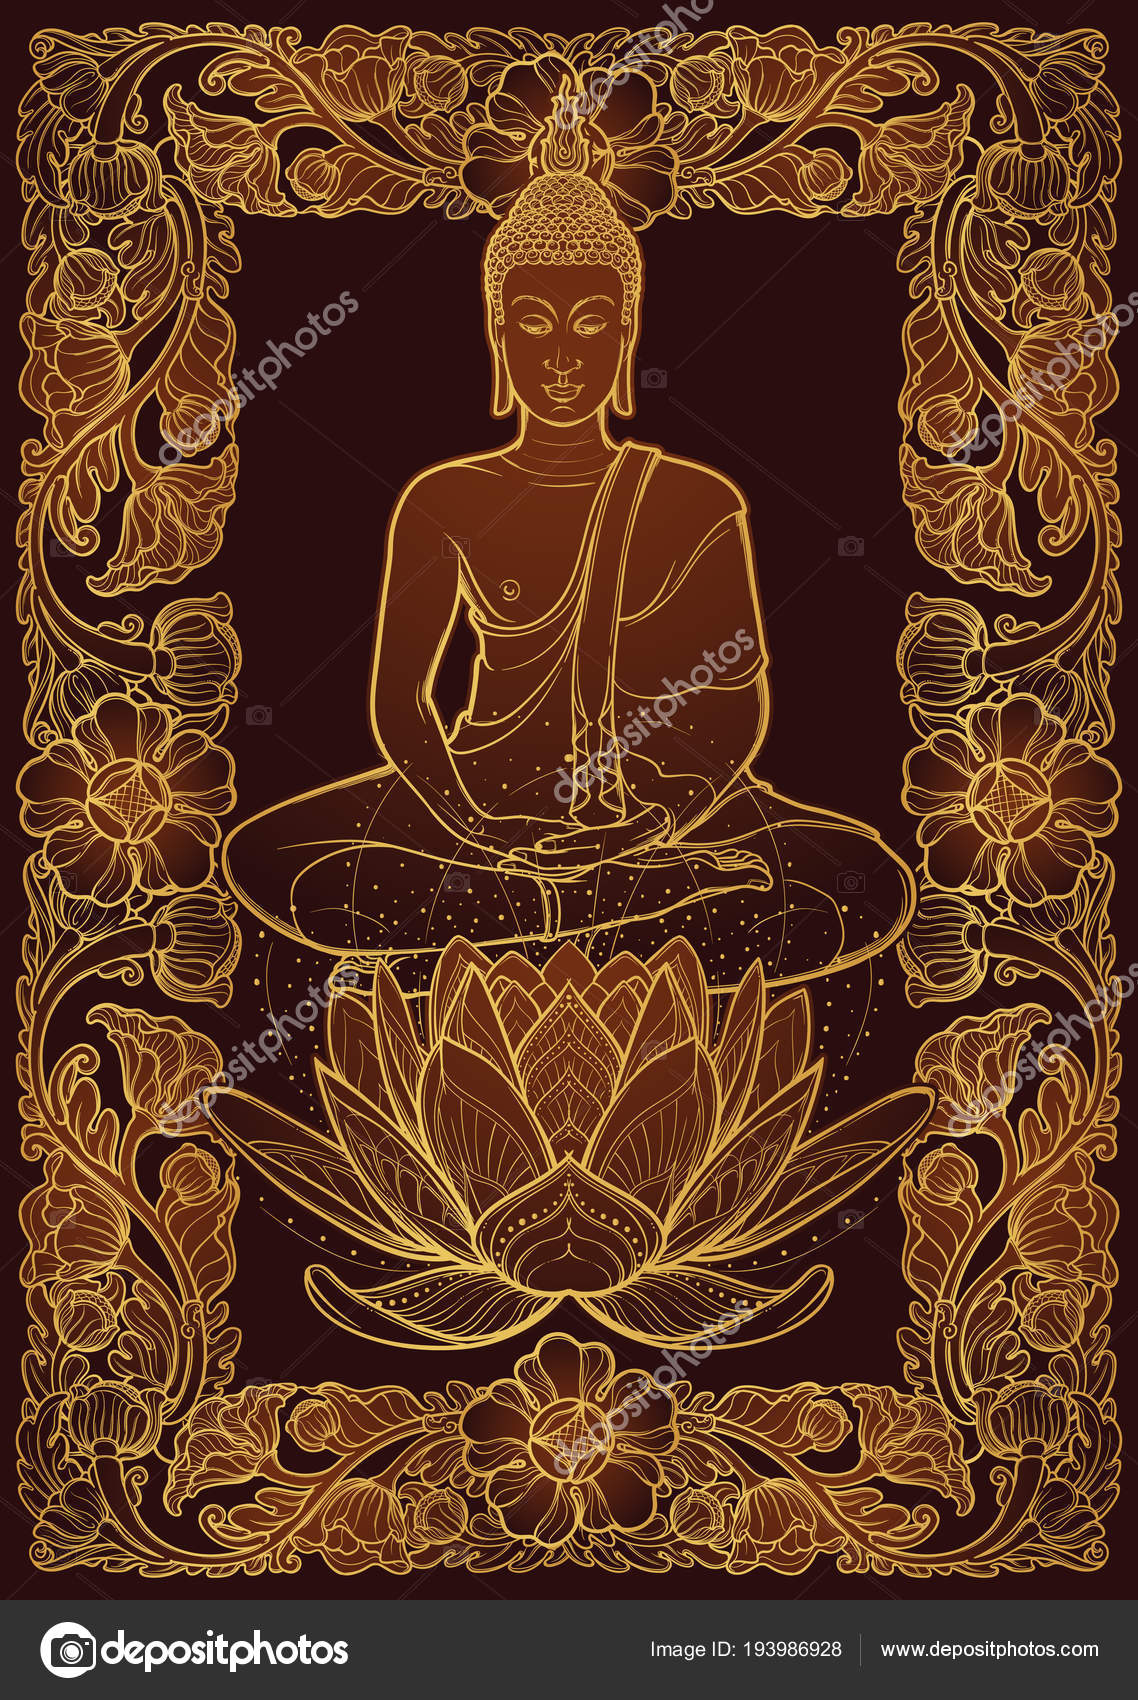 Buddha Sitting On A Lotus Flower And Meditating In The Single Lotus